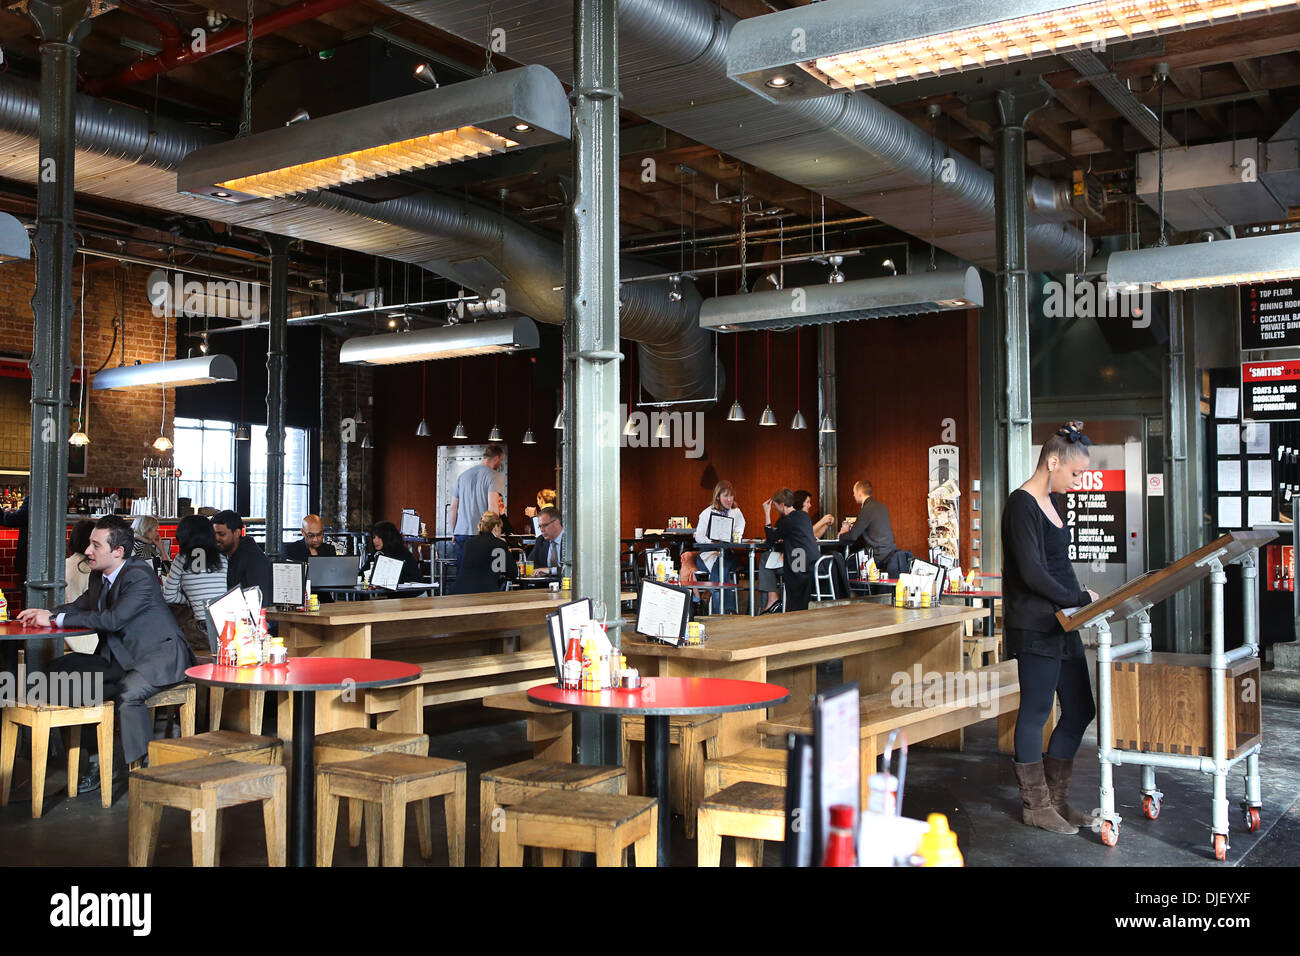 Smiths of Smithfield bar and restaurant. - Stock Image